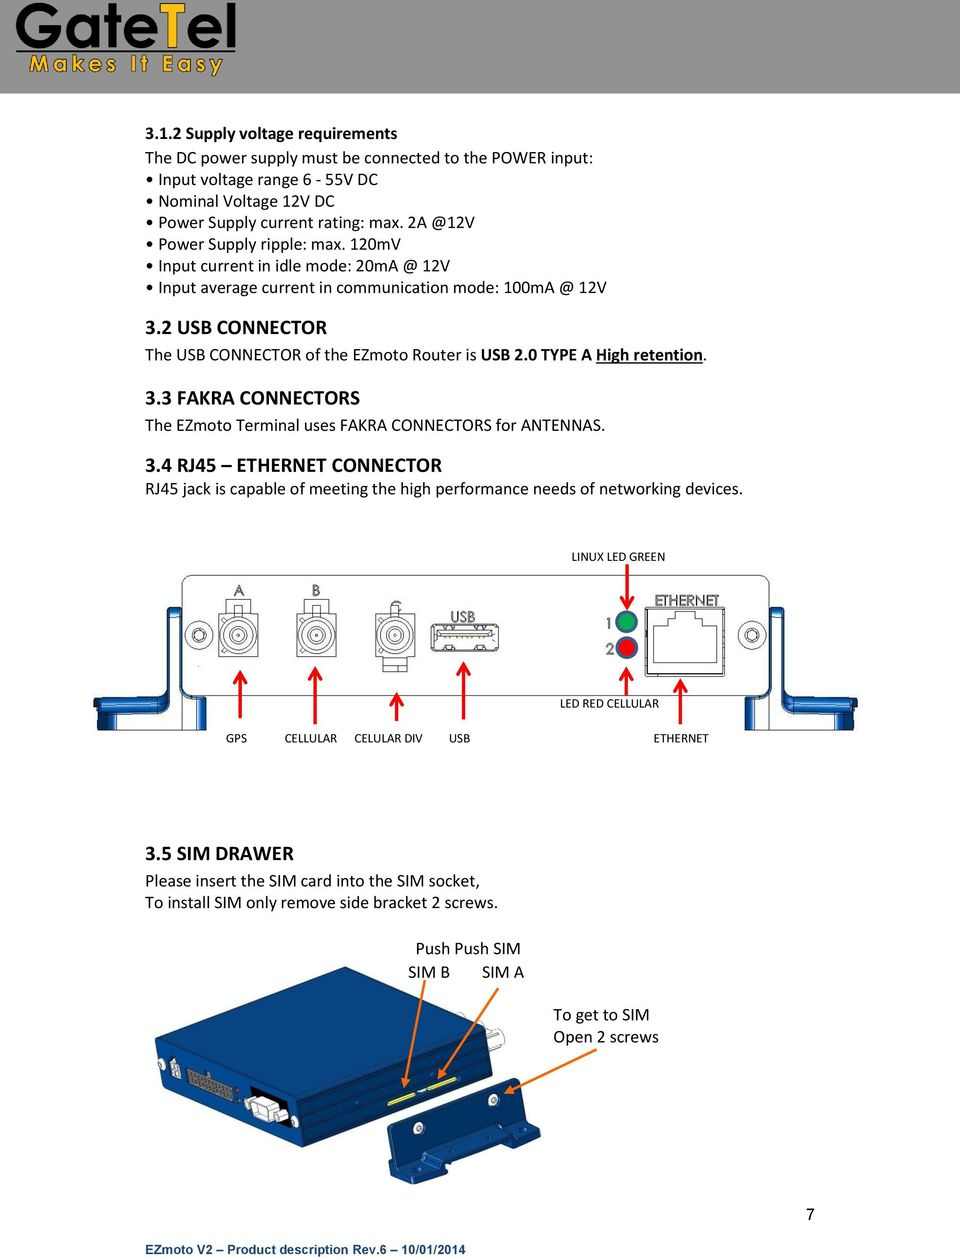 2 USB CONNECTOR The USB CONNECTOR of the EZmoto Router is USB 2.0 TYPE A High retention. 3.3 FAKRA CONNECTORS The EZmoto Terminal uses FAKRA CONNECTORS for ANTENNAS. 3.4 RJ45 ETHERNET CONNECTOR RJ45 jack is capable of meeting the high performance needs of networking devices.